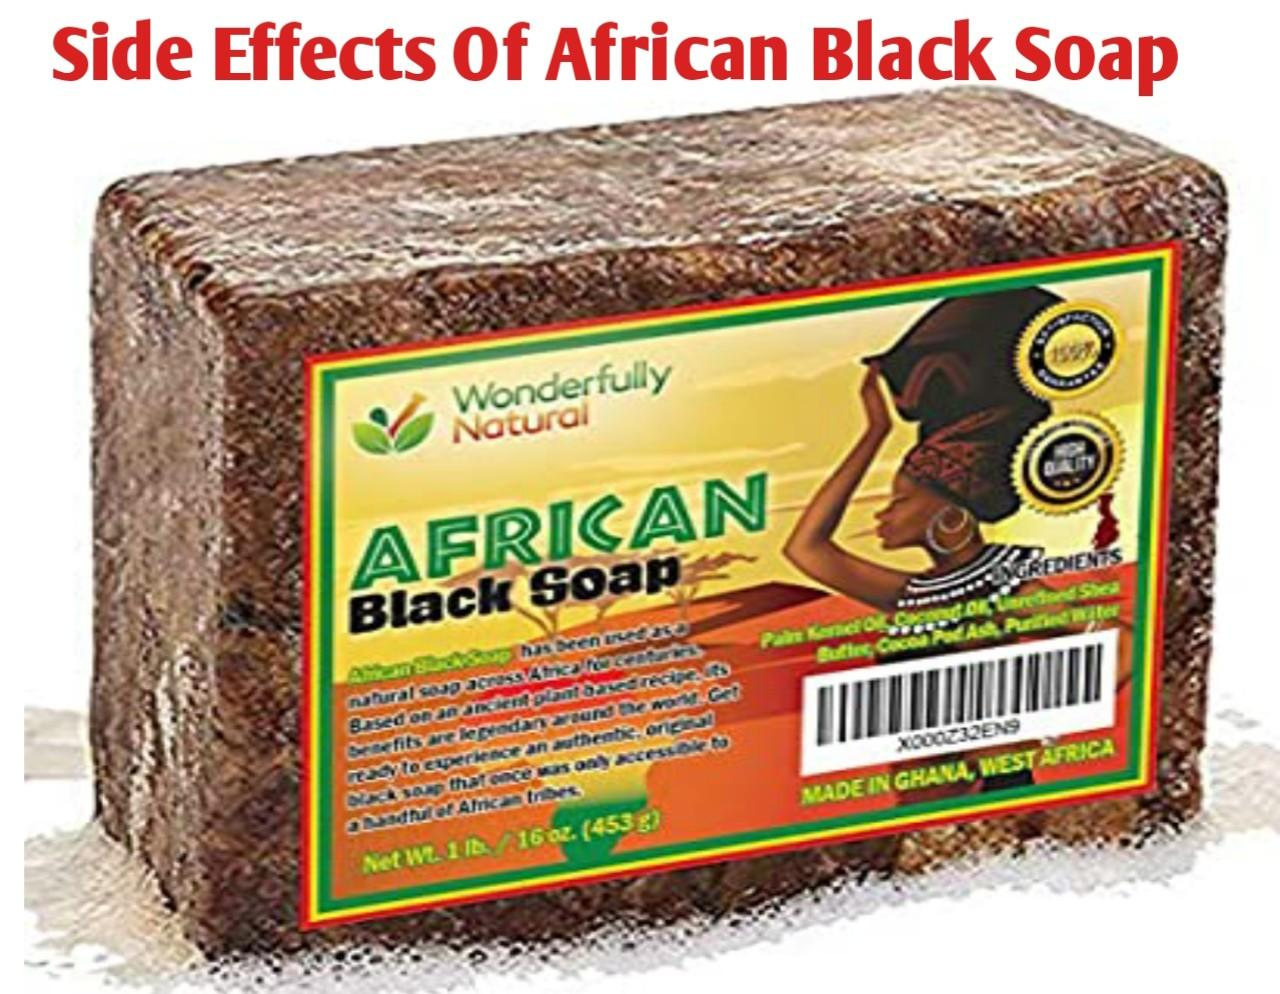 African Black Soap Side Effects